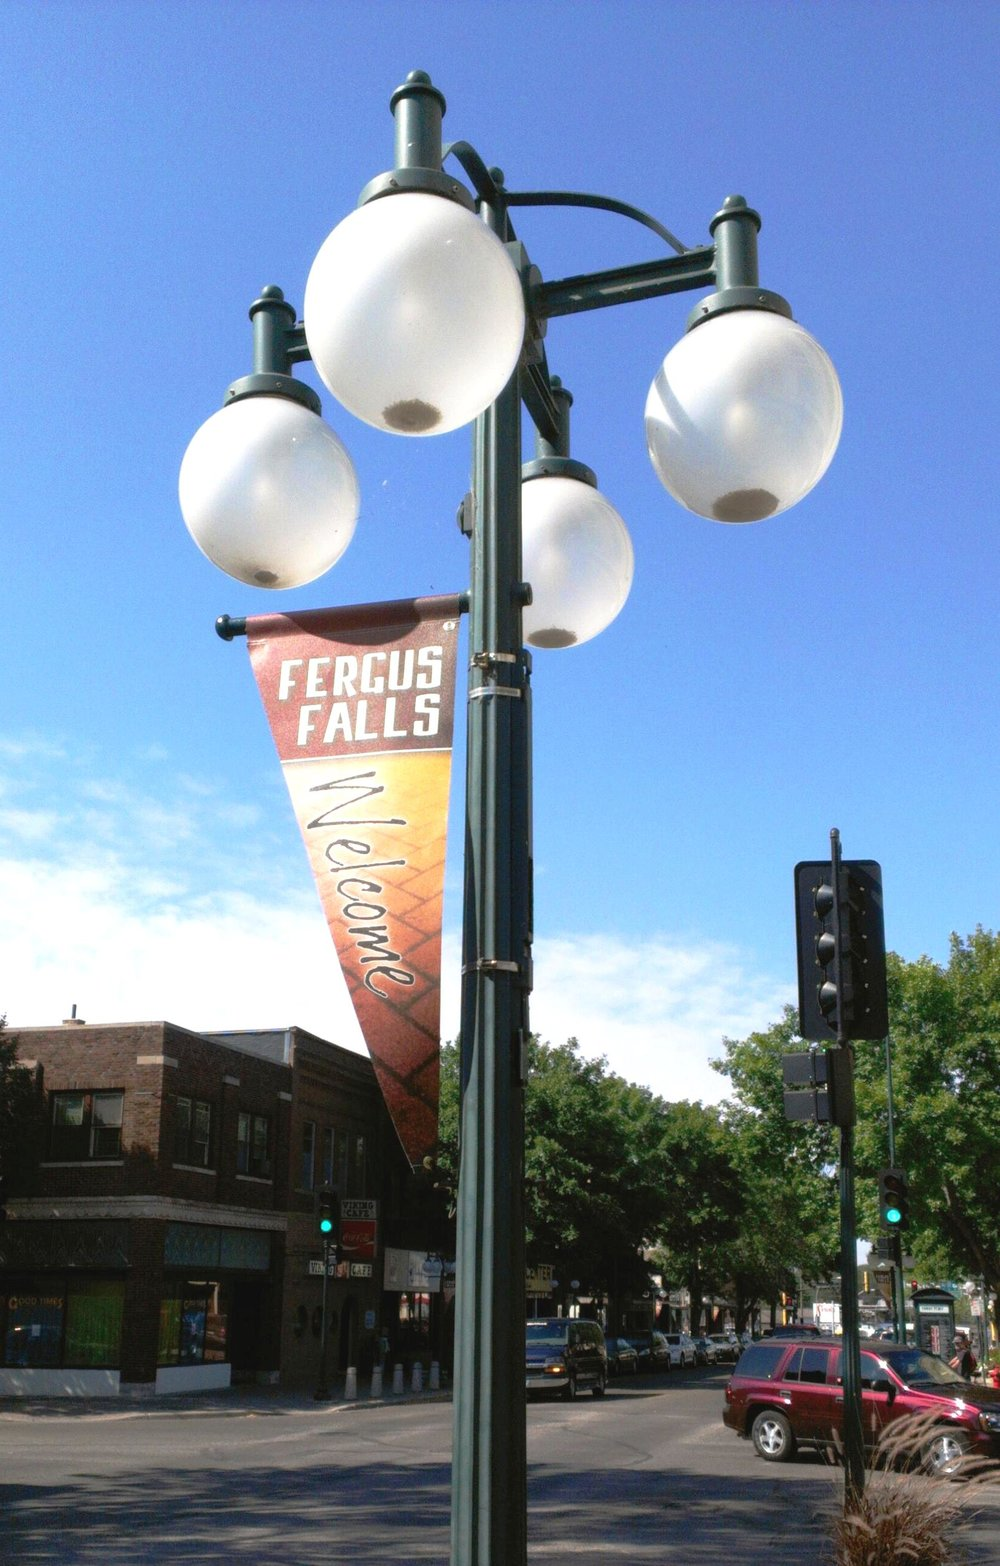 Downtown Fergus Falls, Minnesota